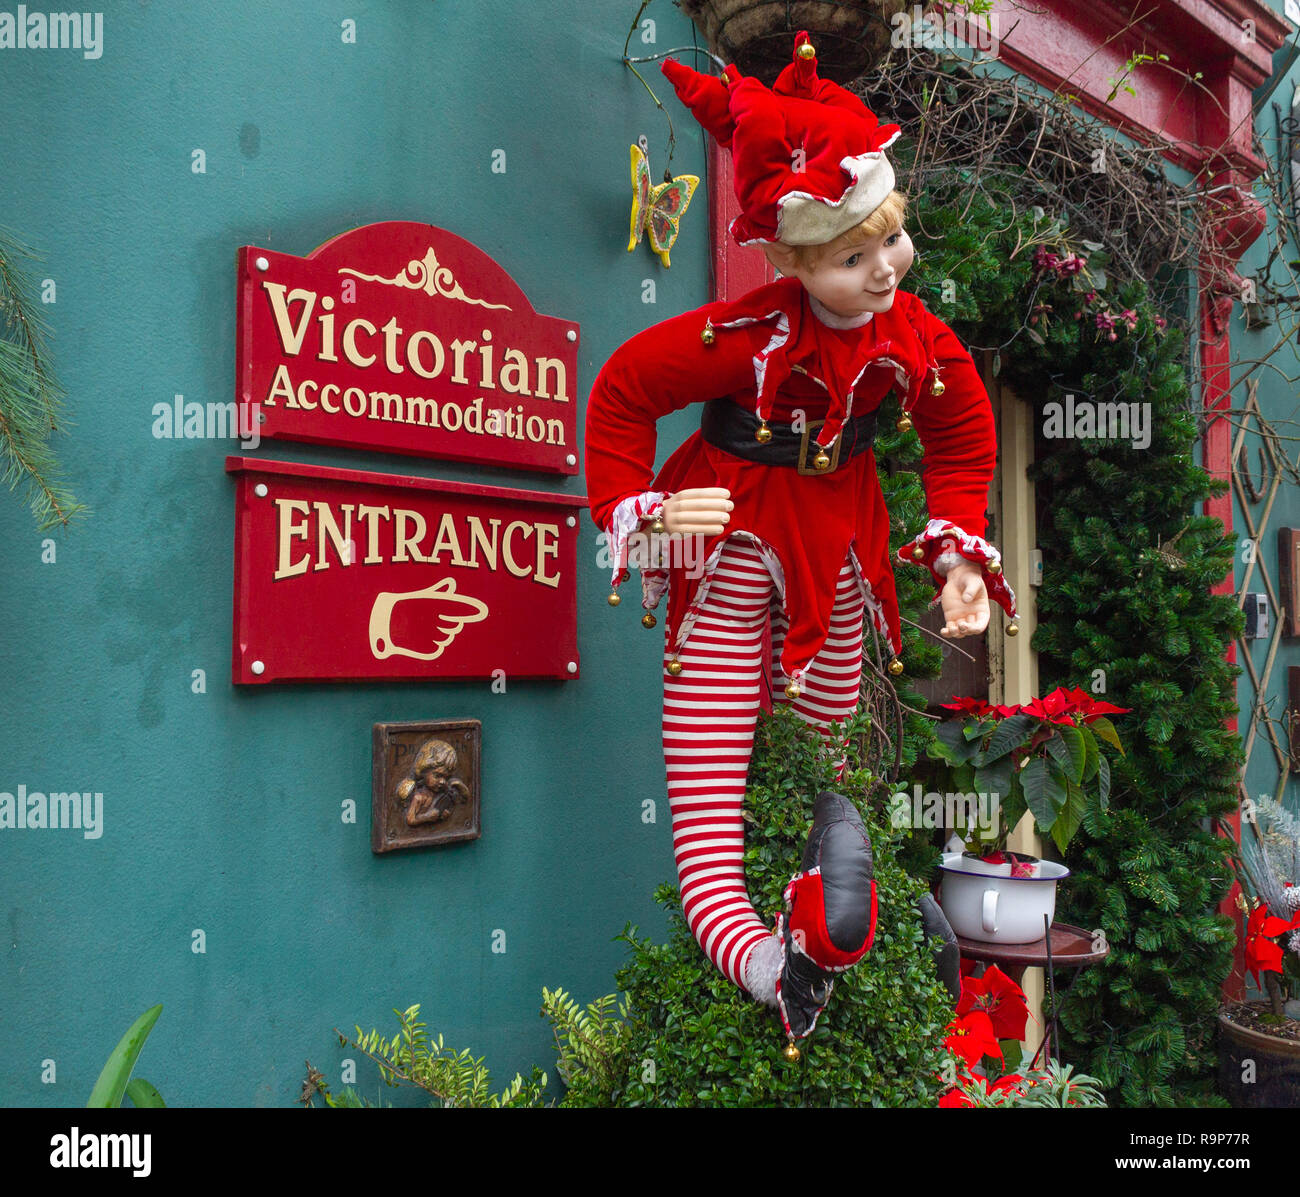 christmas-elf-decoration-on-guest-house-entrance-R9P77R.jpg